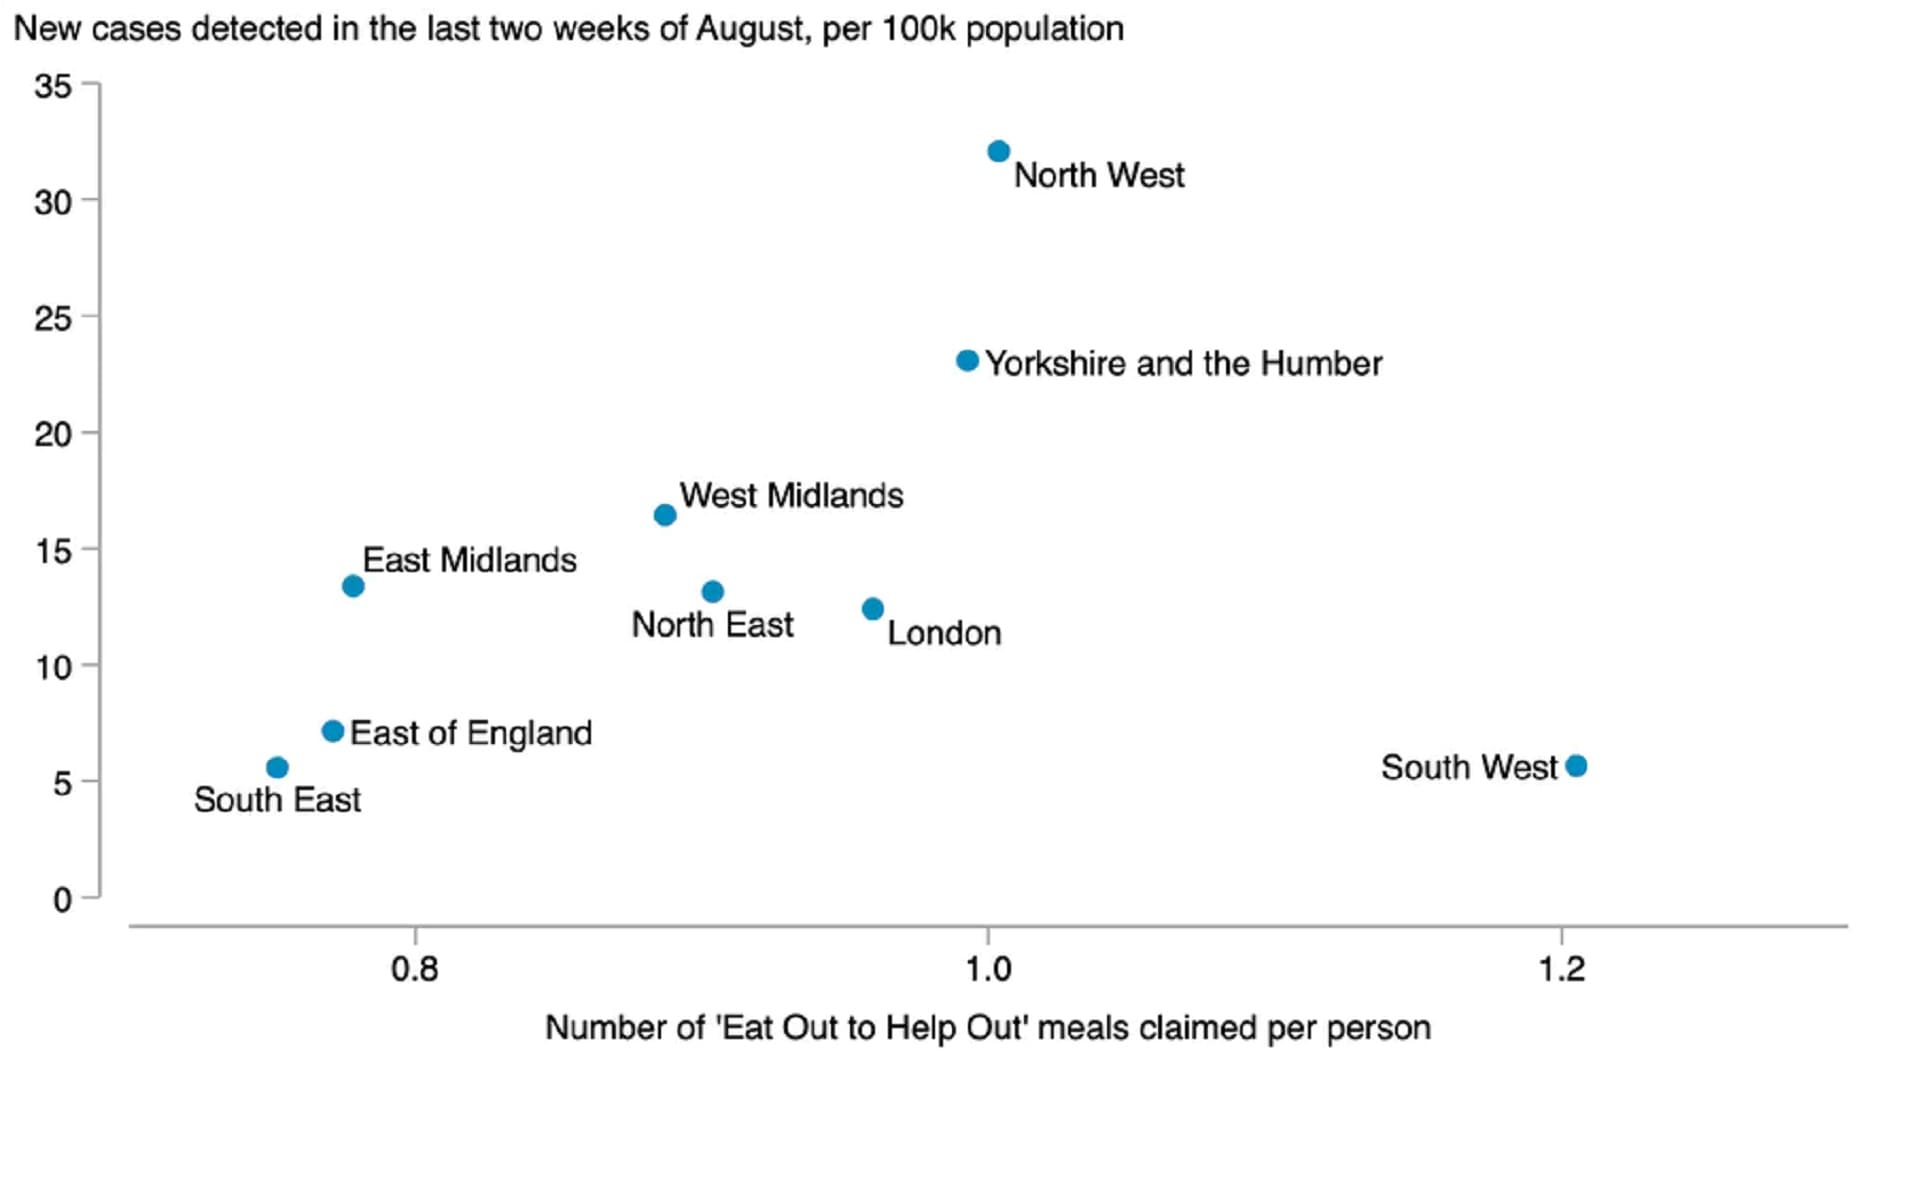 New cases detected in the last two weeks of August, per 100,000 of population. UK government data/author's analysis